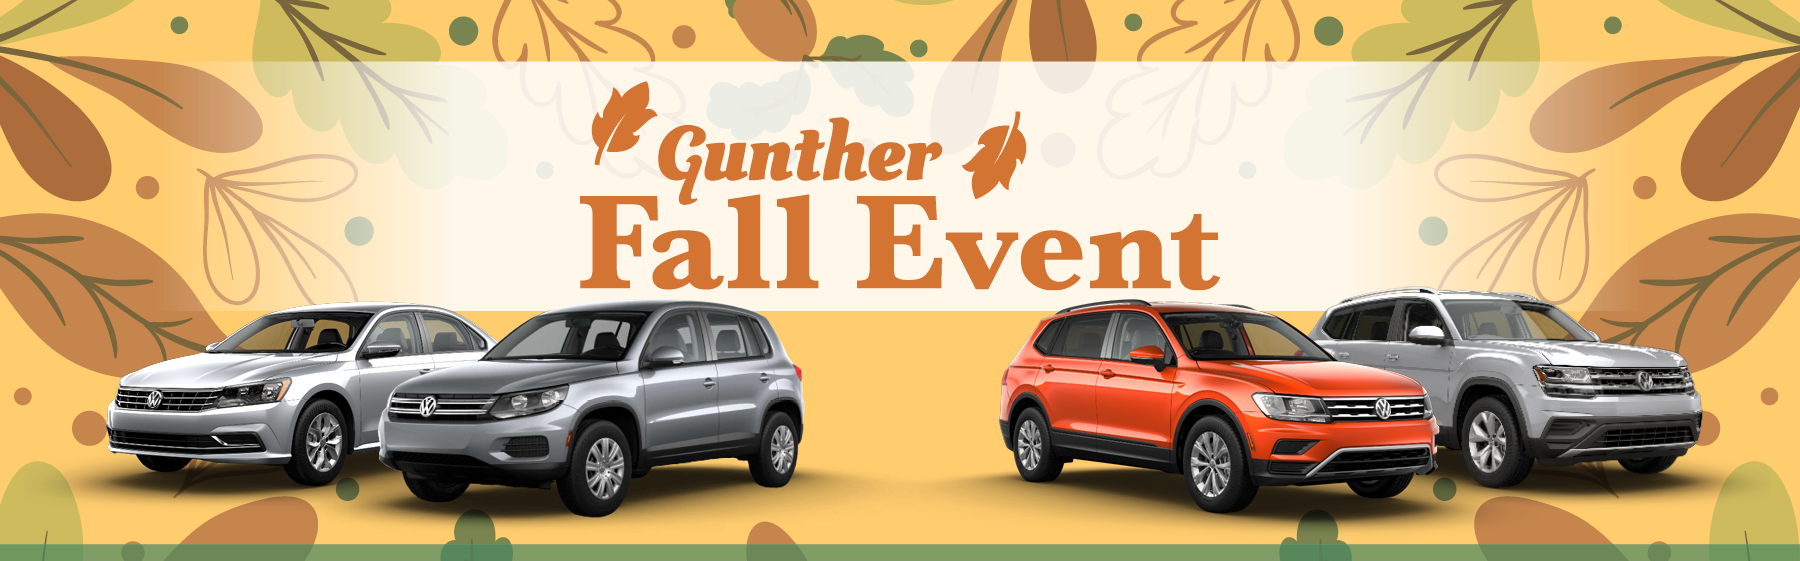 Gunther Fall Event